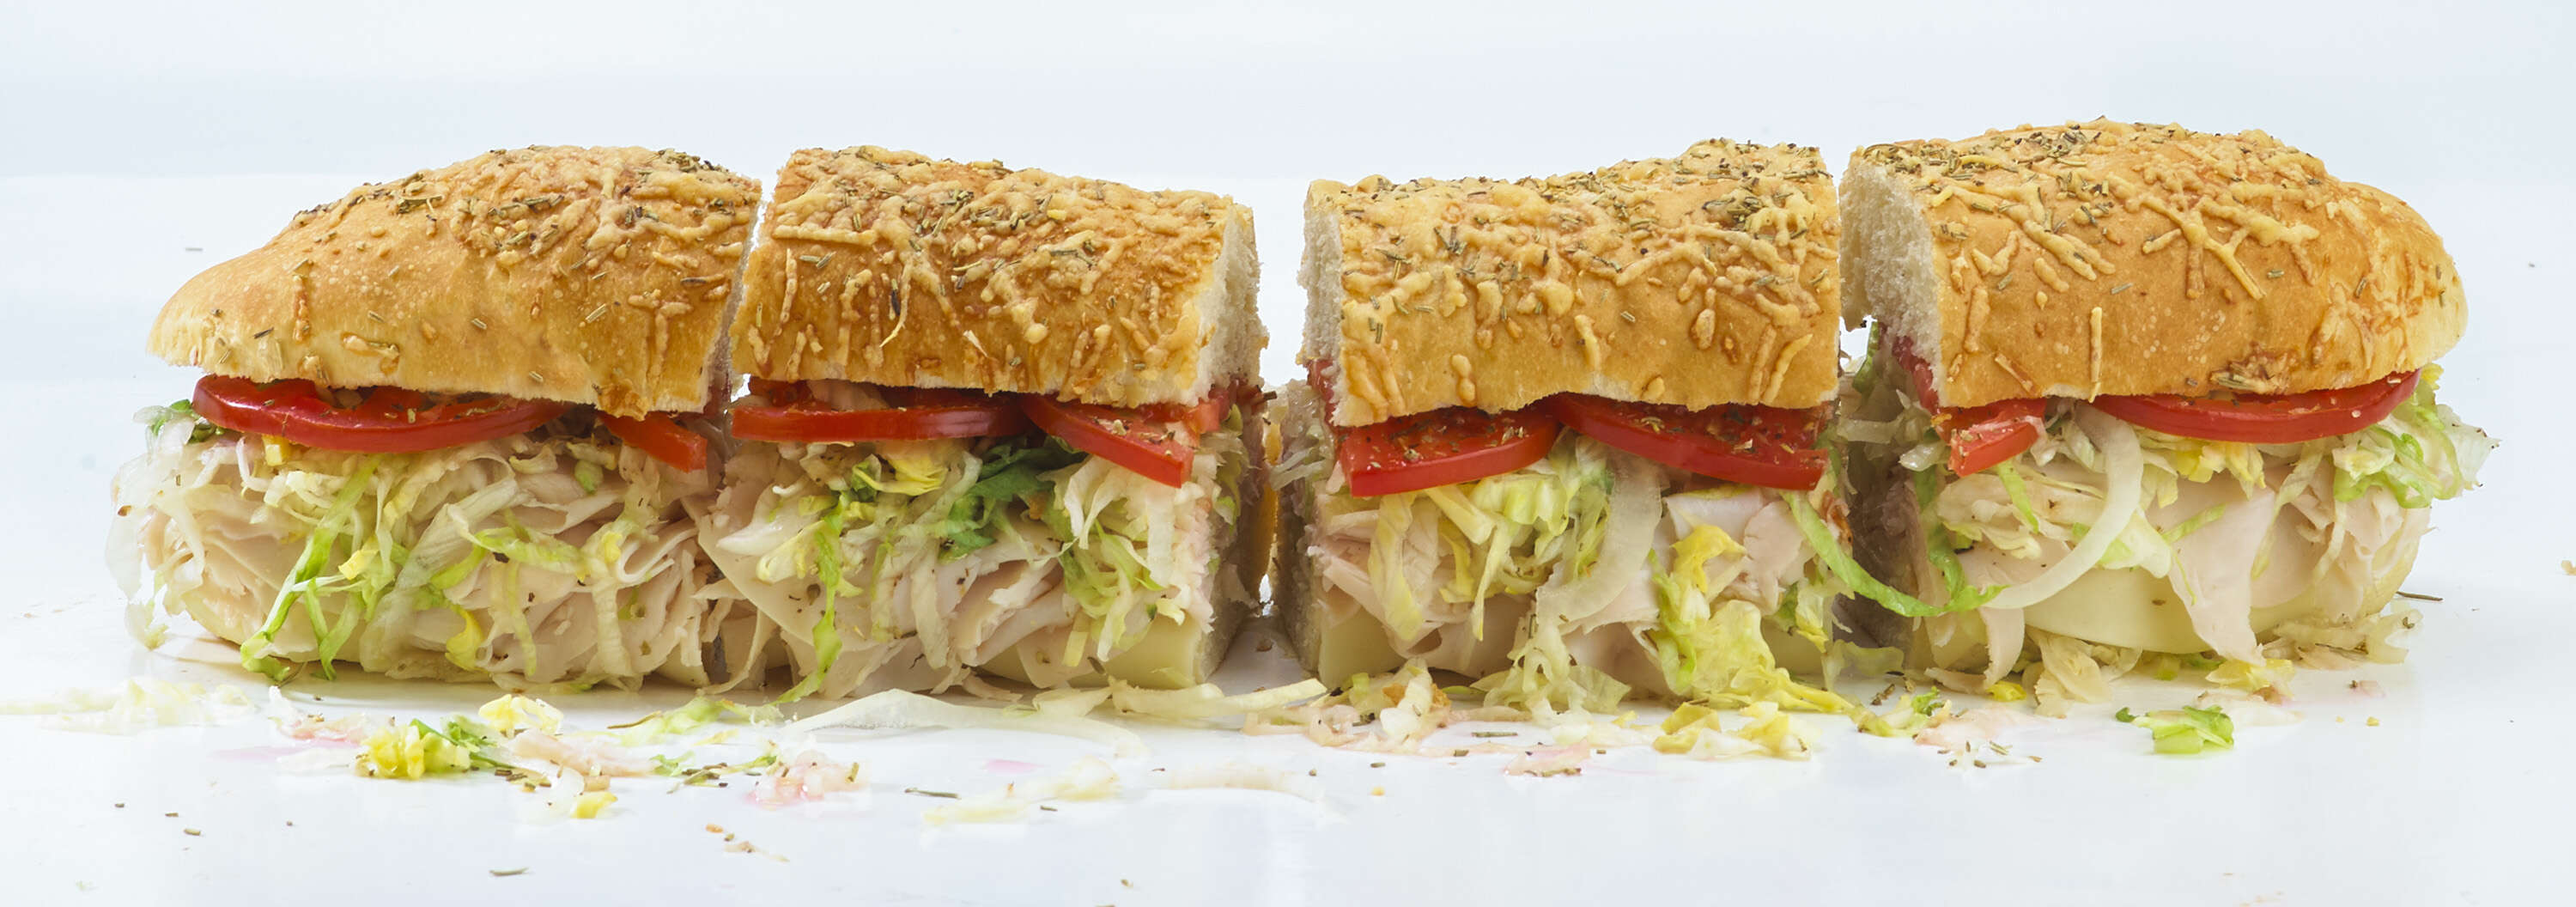 Jersey Mike's Subs' authentic fresh sliced/fresh grilled subs